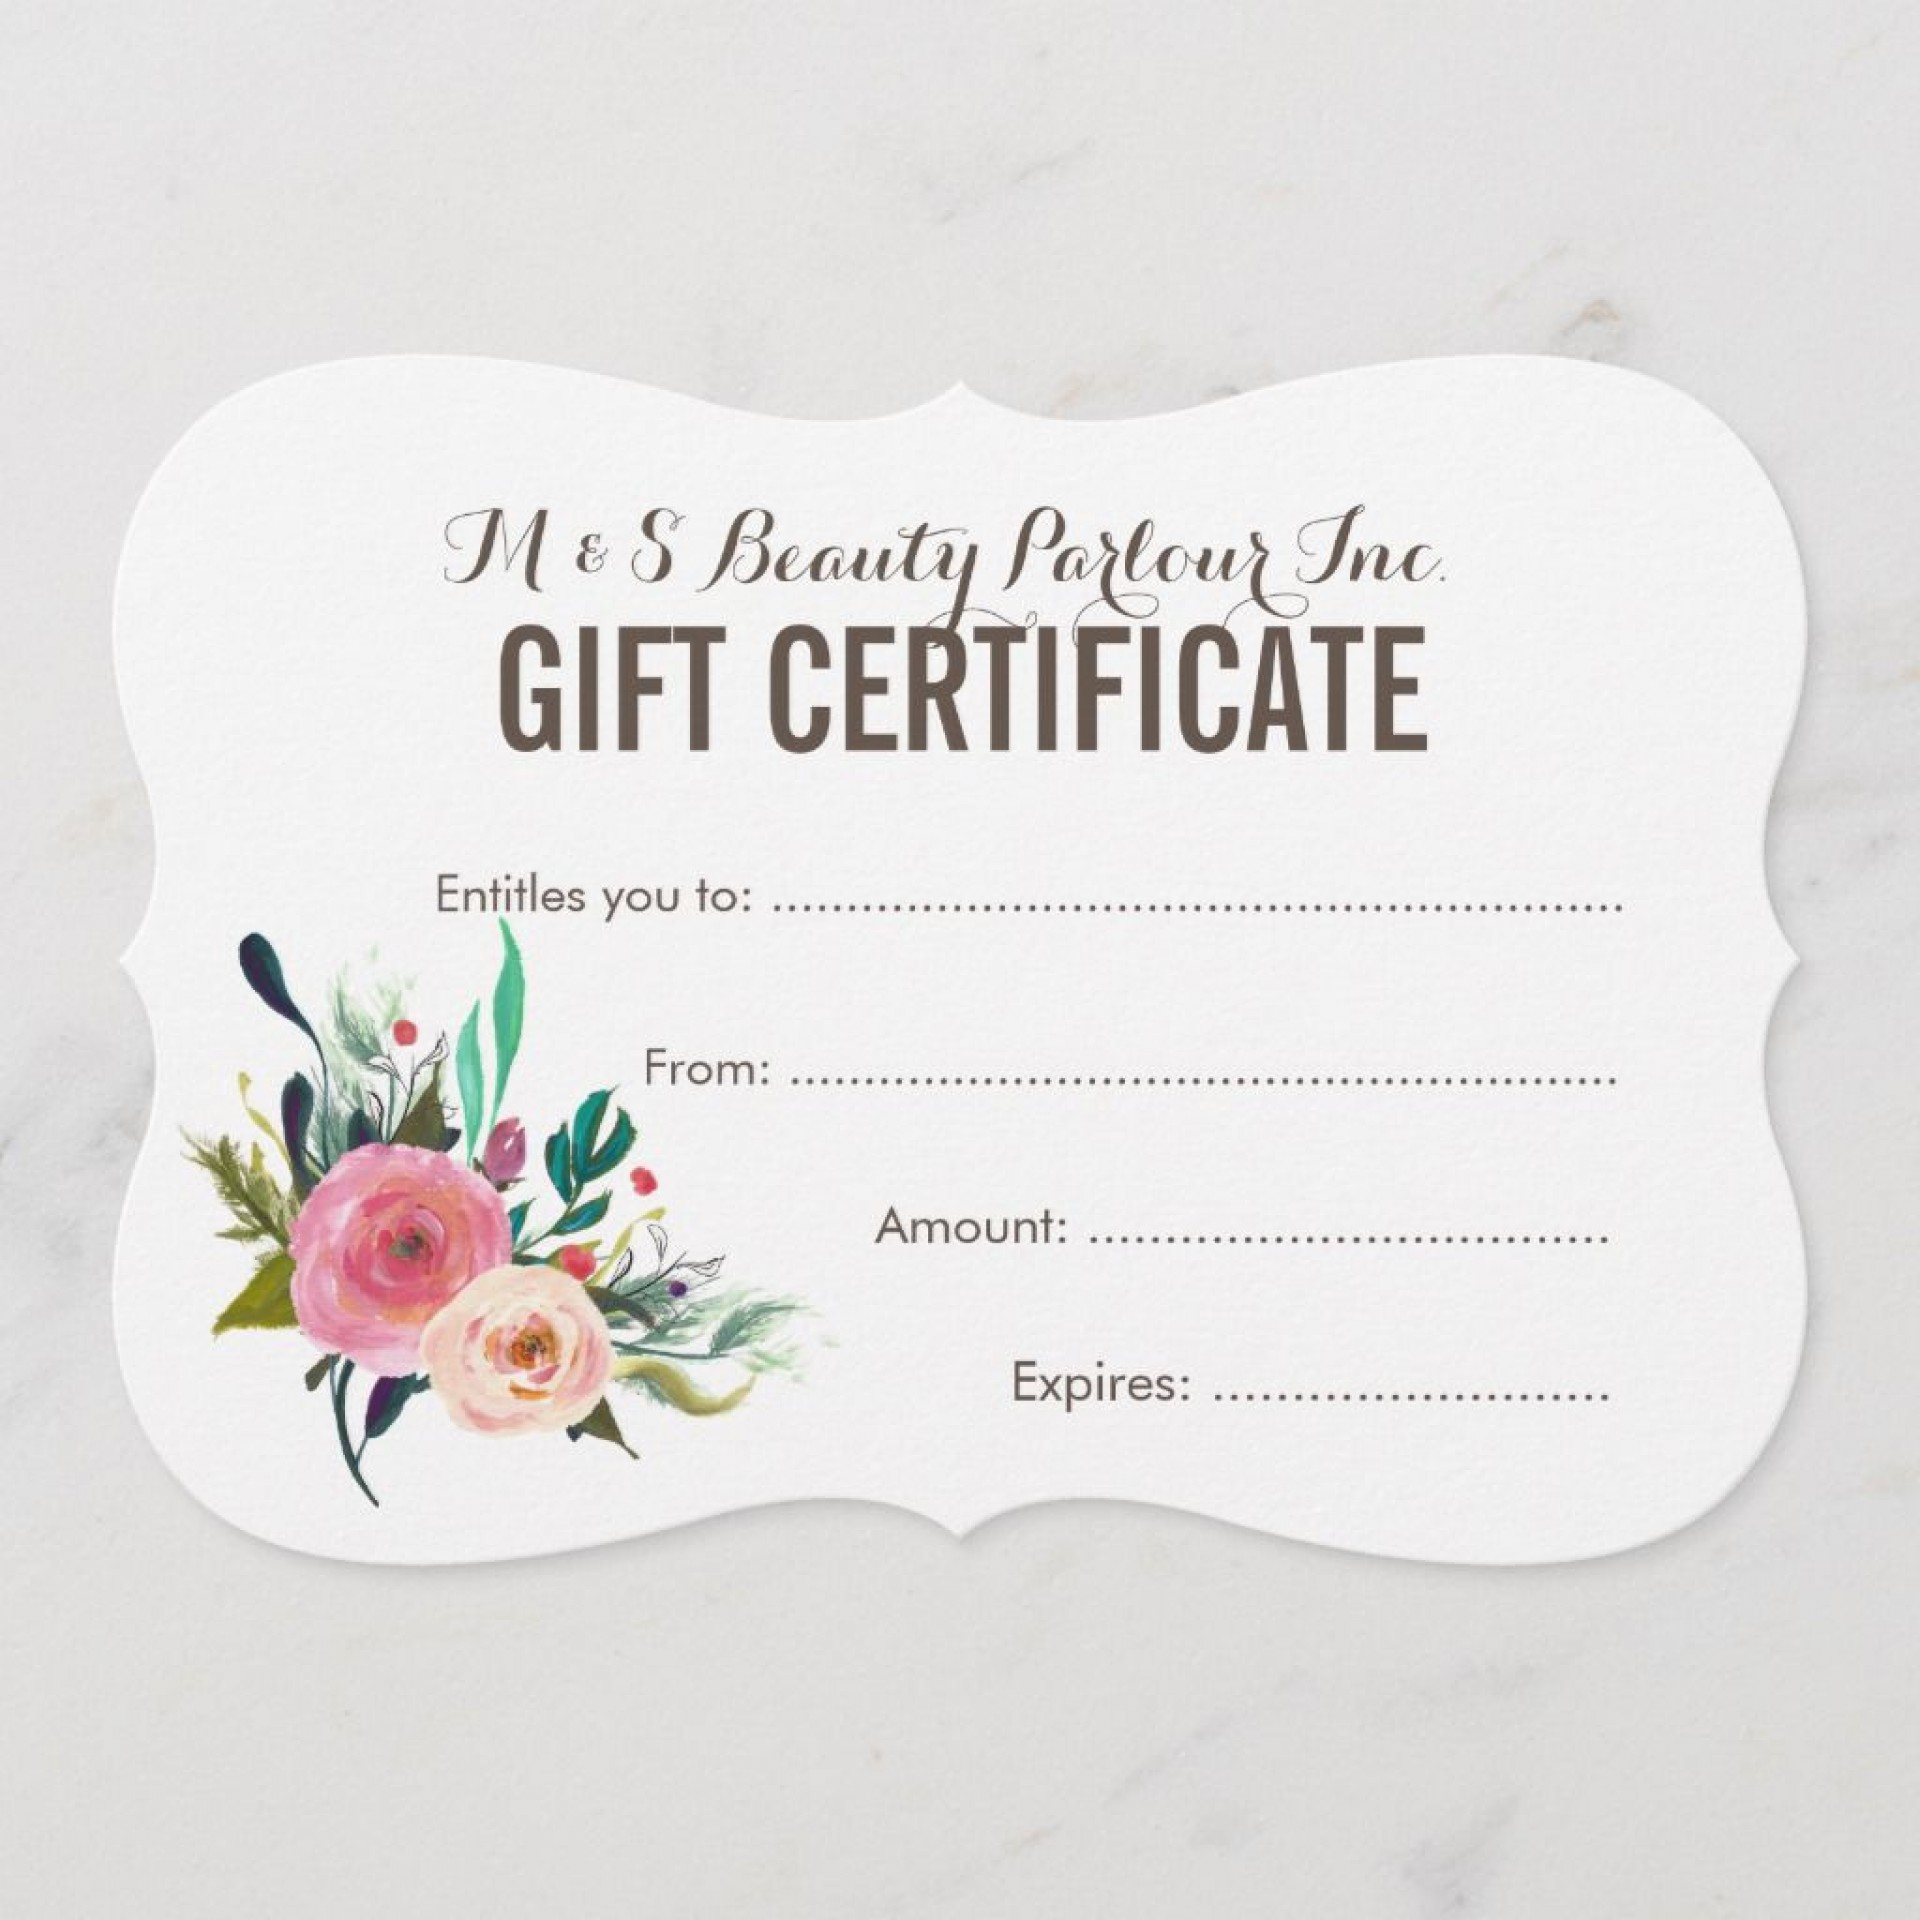 005 Best Salon Gift Certificate Template Photo 1920